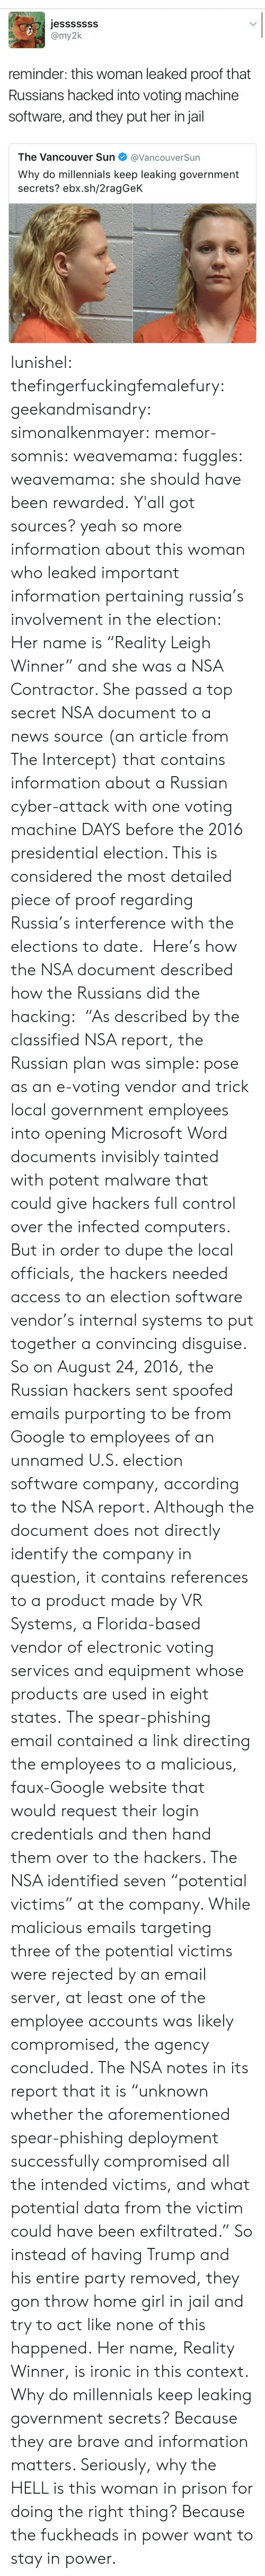 """Computers, Google, and Ironic: jesssssSS  reminder: this woman leaked proof that  Russians hacked into voting machine  software, and they put her in jail  The Vancouver Sun@VancouverSun  Why do millennials keep leaking government  secrets? ebx.sh/2ragGeK lunishel: thefingerfuckingfemalefury:  geekandmisandry:  simonalkenmayer:  memor-somnis:  weavemama:   fuggles:  weavemama:  she should have been rewarded.  Y'all got sources?  yeah so more information about this woman who leaked important information pertaining russia's involvement in the election: Her name is """"Reality Leigh Winner"""" and she was a NSA Contractor. She passed a top secret NSA document to a news source (an article from The Intercept) that contains information about a Russian cyber-attack with one voting machine DAYS before the 2016 presidential election. This is considered the most detailed piece of proof regarding Russia's interference with the elections to date. Here's how the NSA document described how the Russians did the hacking: """"As described by the classified NSA report, the Russian plan was simple: pose as an e-voting vendor and trick local government employees into opening Microsoft Word documents invisibly tainted with potent malware that could give hackers full control over the infected computers. But in order to dupe the local officials, the hackers needed access to an election software vendor's internal systems to put together a convincing disguise. So on August 24, 2016, the Russian hackers sent spoofed emails purporting to be from Google to employees of an unnamed U.S. election software company, according to the NSA report. Although the document does not directly identify the company in question, it contains references to a product made by VR Systems, a Florida-based vendor of electronic voting services and equipment whose products are used in eight states. The spear-phishing email contained a link directing the employees to a malicious, faux-Google website that would request their login"""